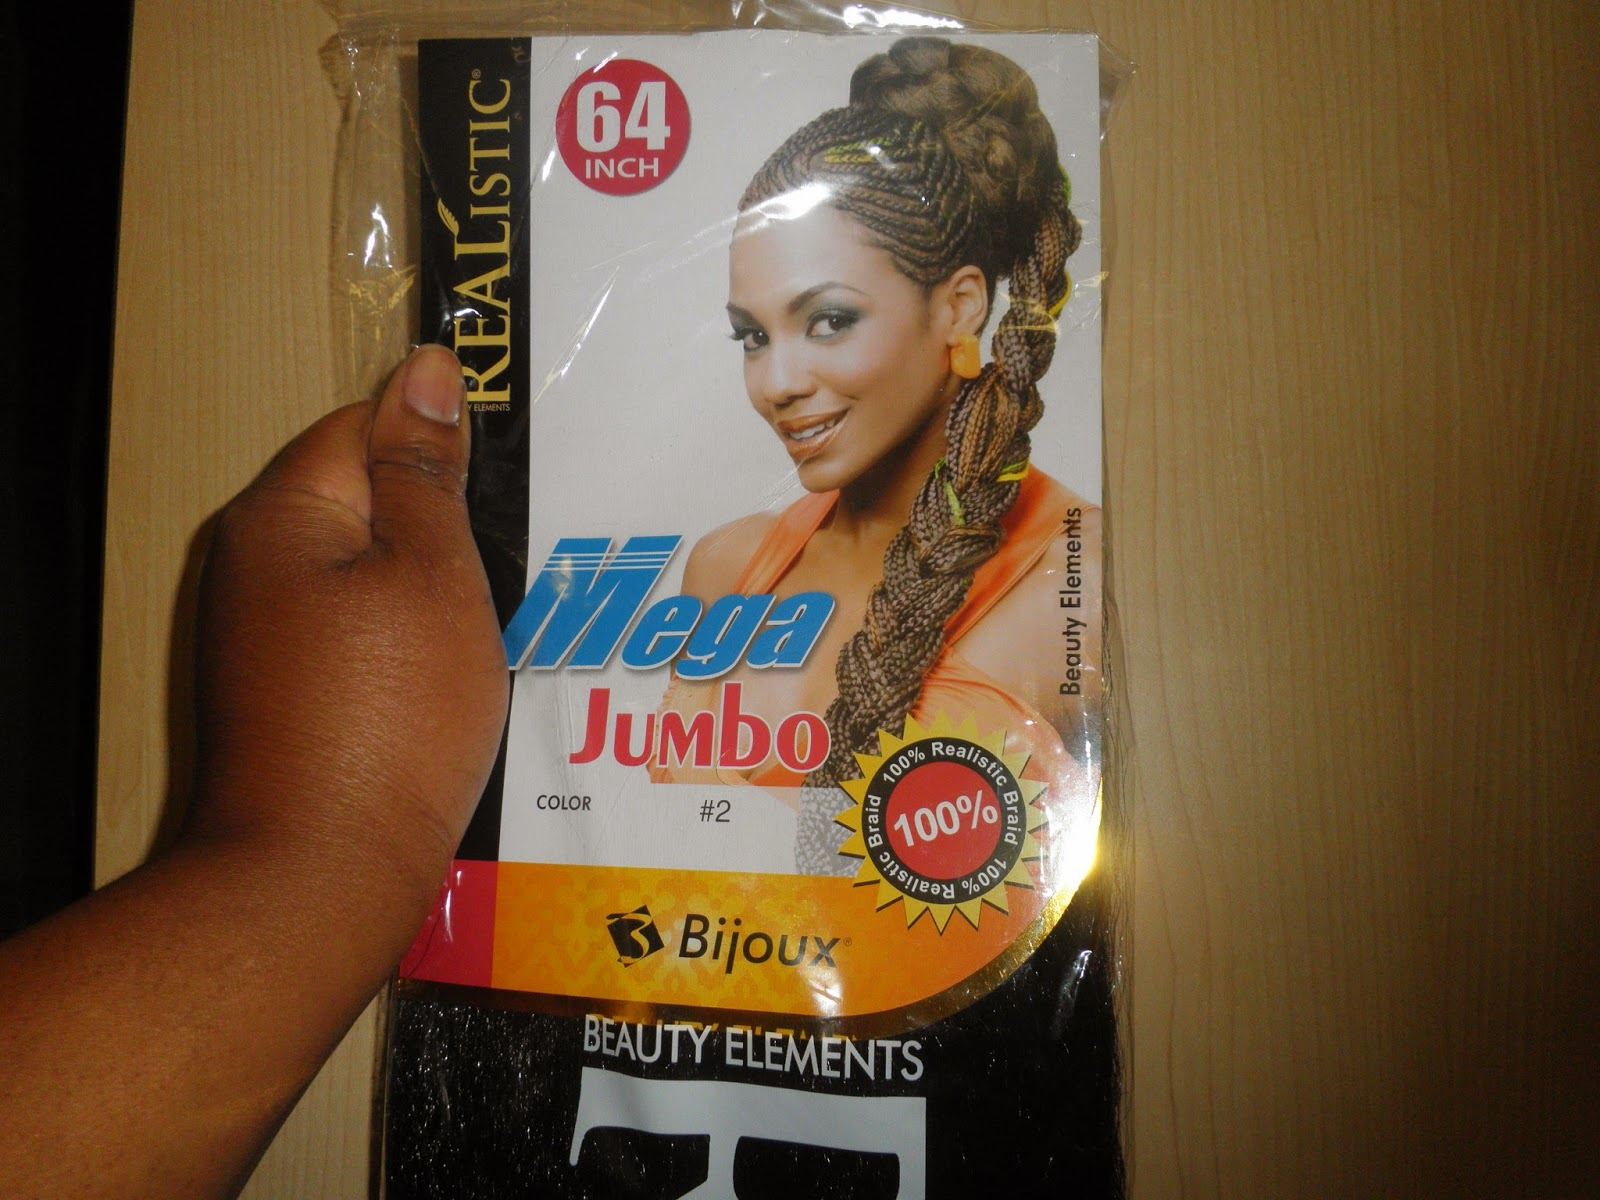 PhenomenalhairCare Review Bijoux Mega Jumbo Braiding Hair